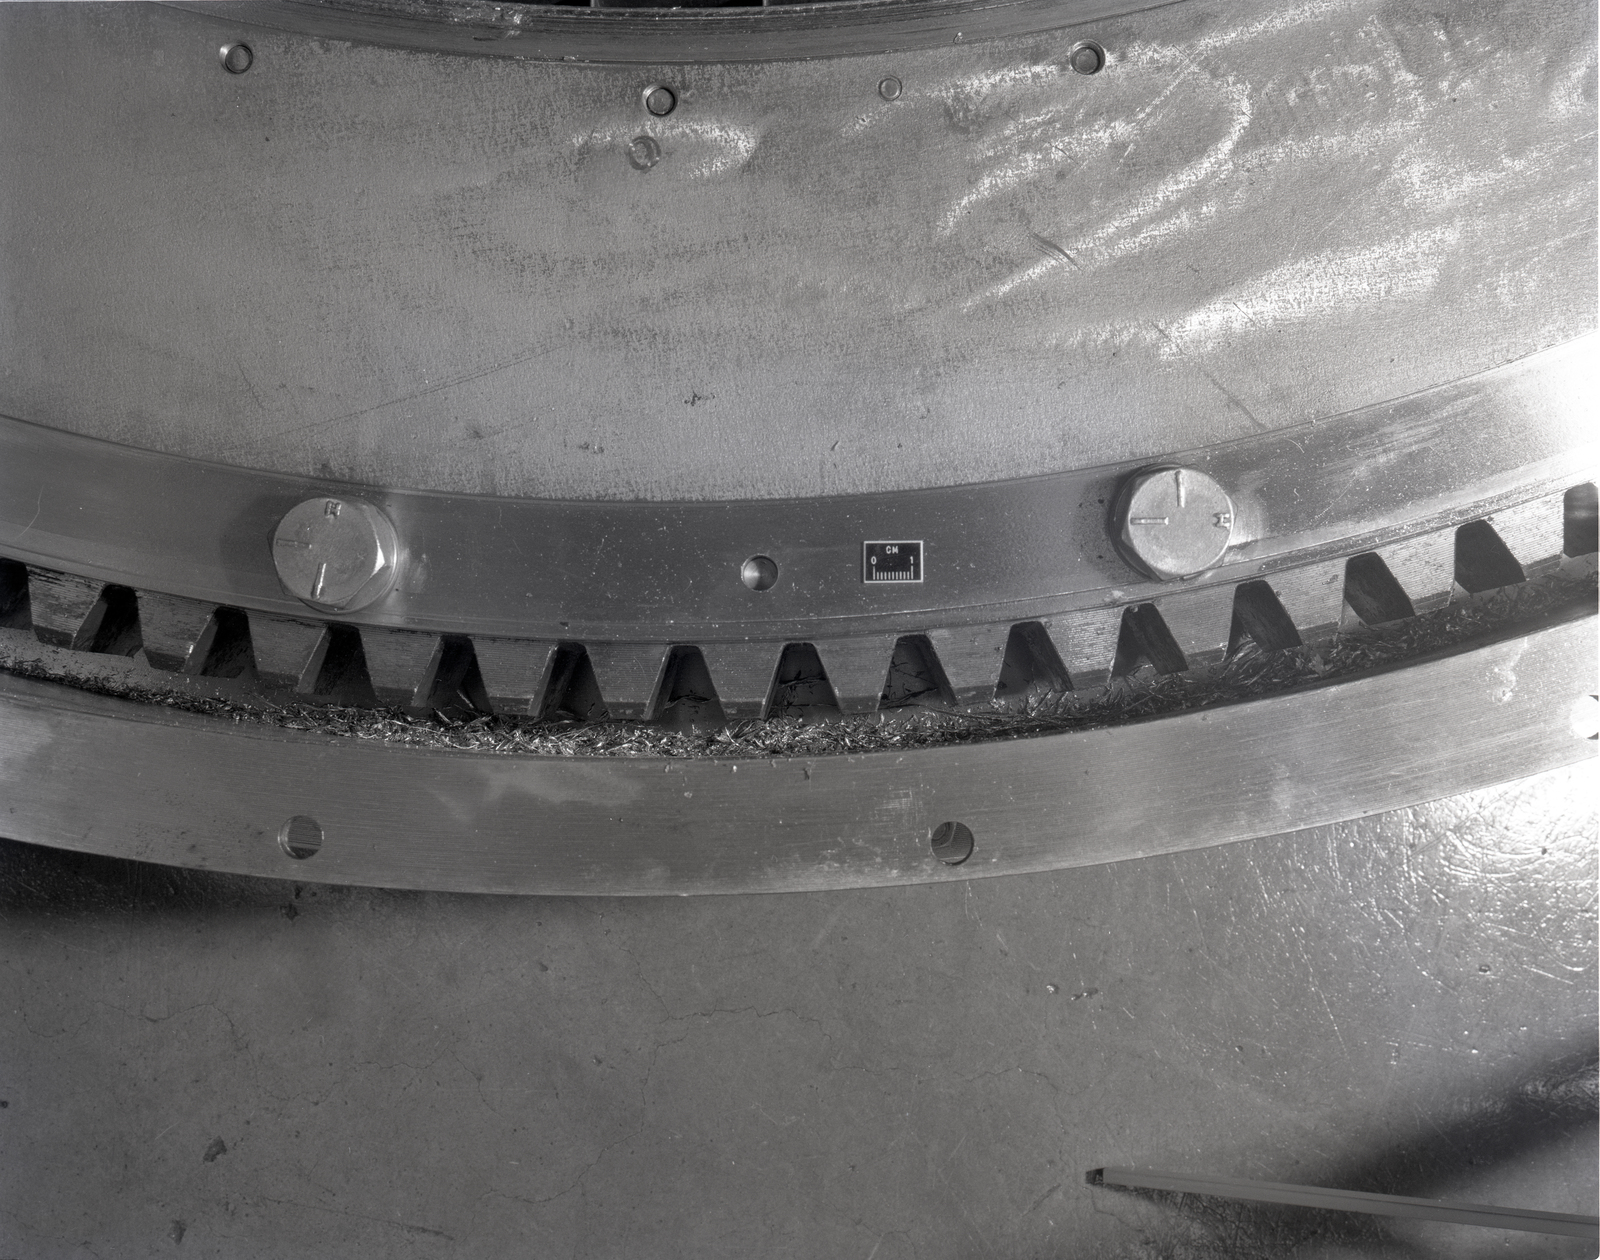 DAMAGED TF34 ROTATING SCREEN AND CHIPS LEFT IN INLET TF34 ENGINE